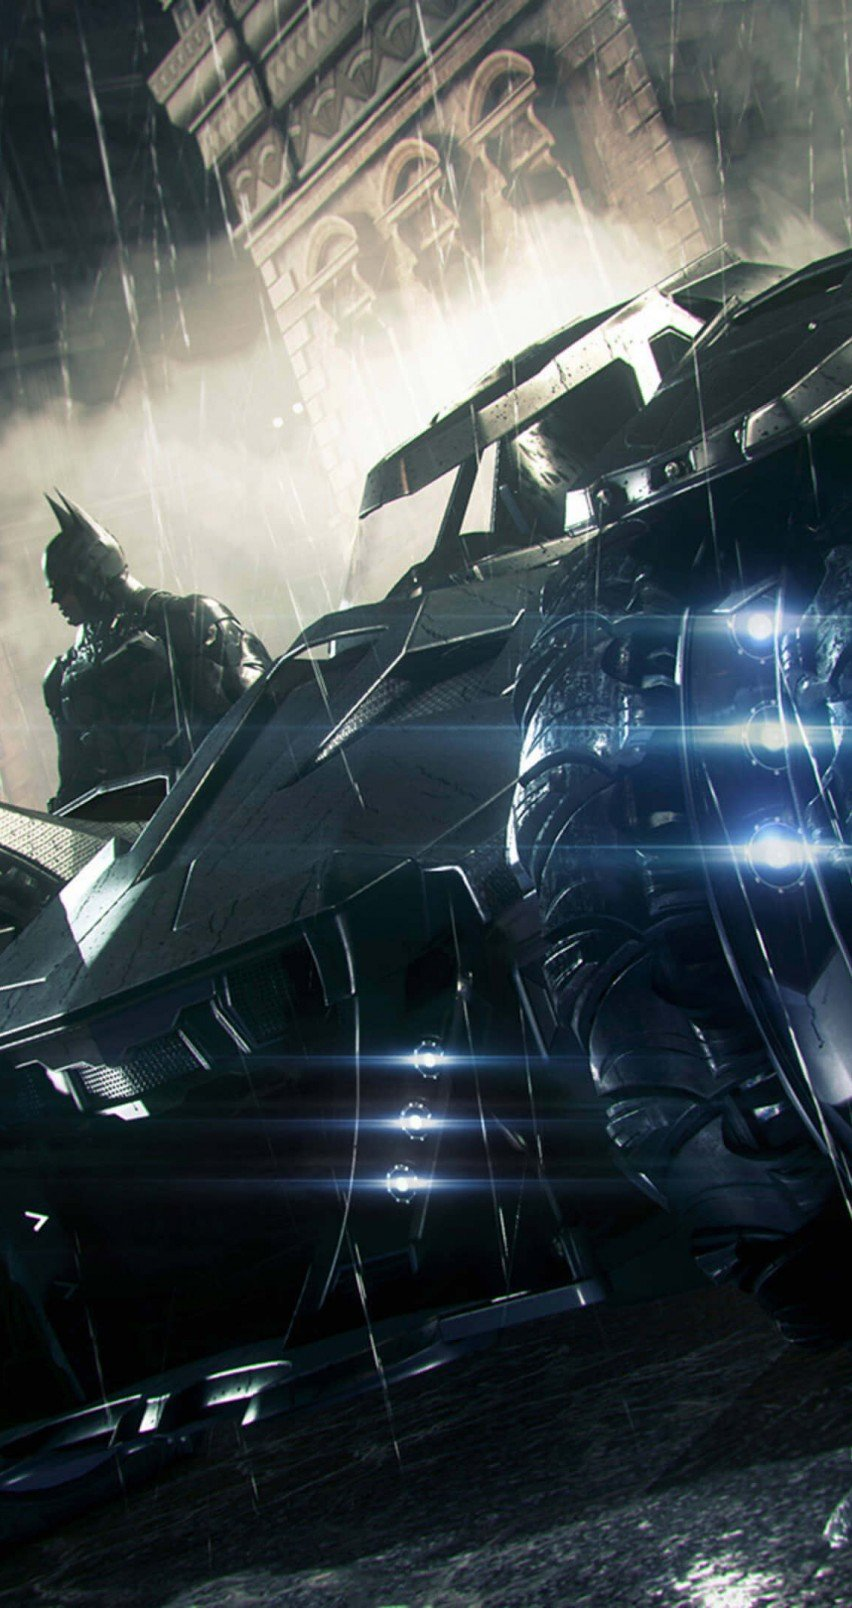 Batman Arkham Knight Batmobile Wallpaper - WallpaperSafari